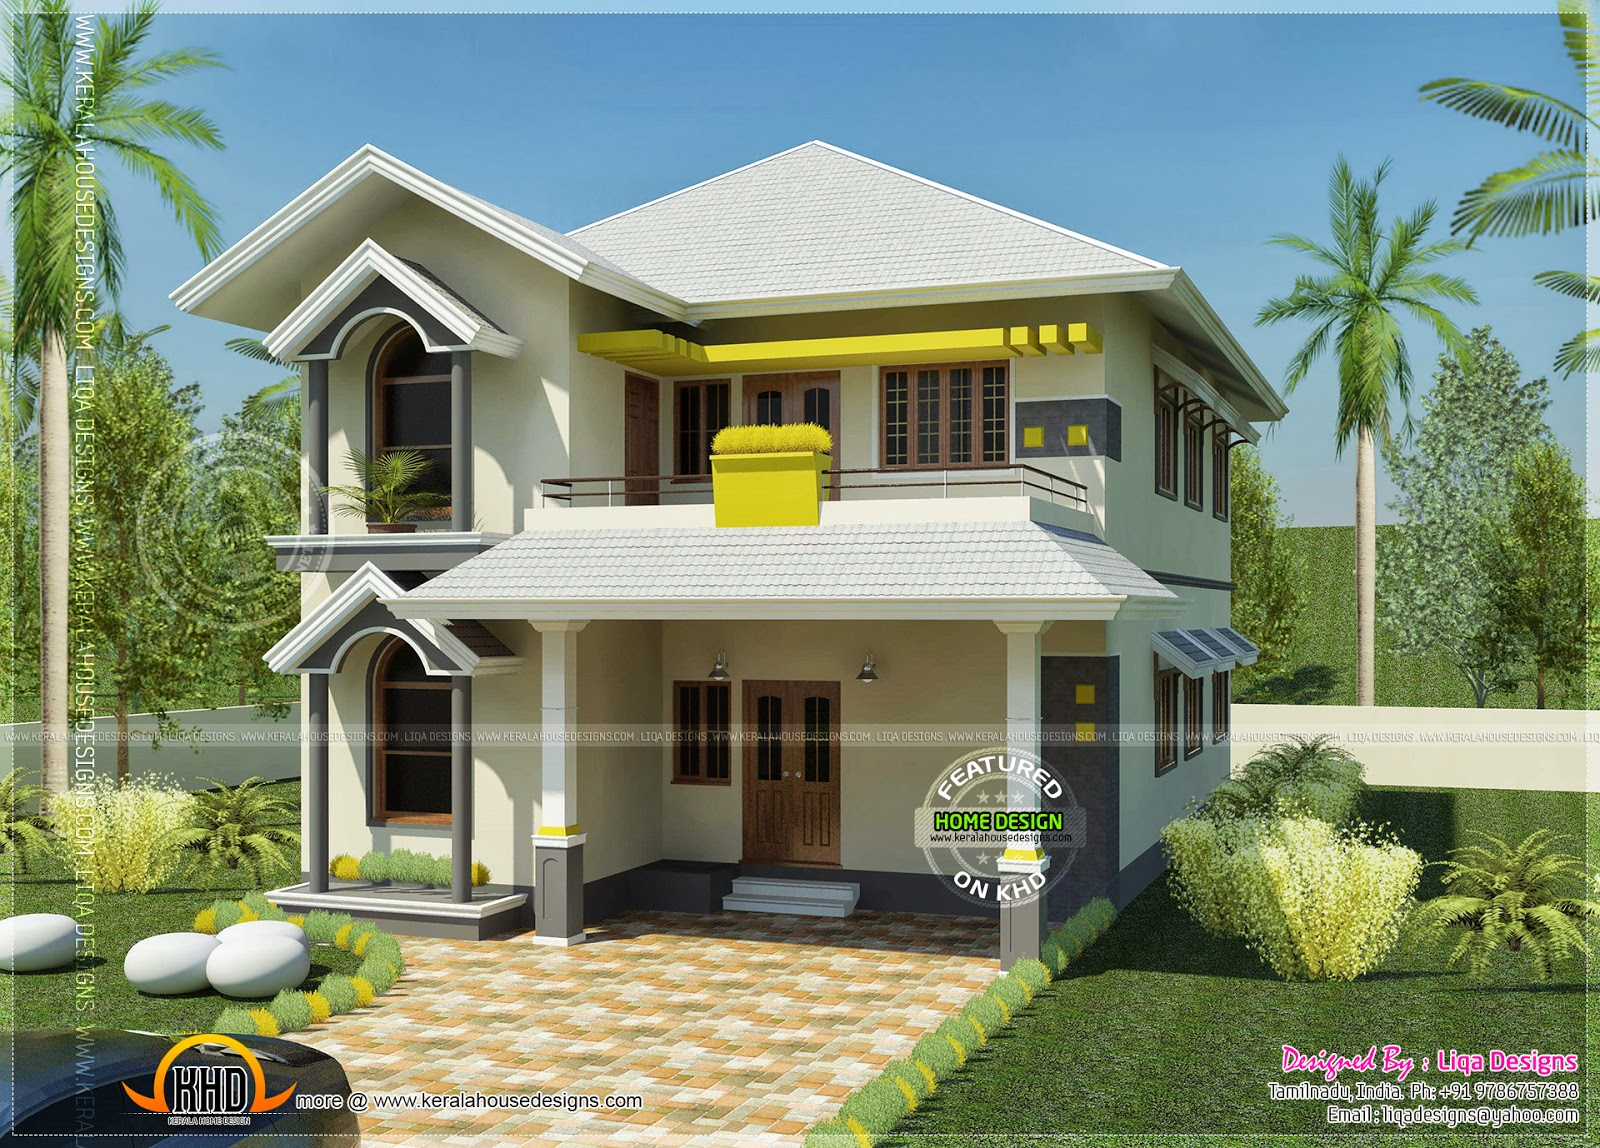 house south indian style in 2378 square feet kerala home design and floor plans. Black Bedroom Furniture Sets. Home Design Ideas